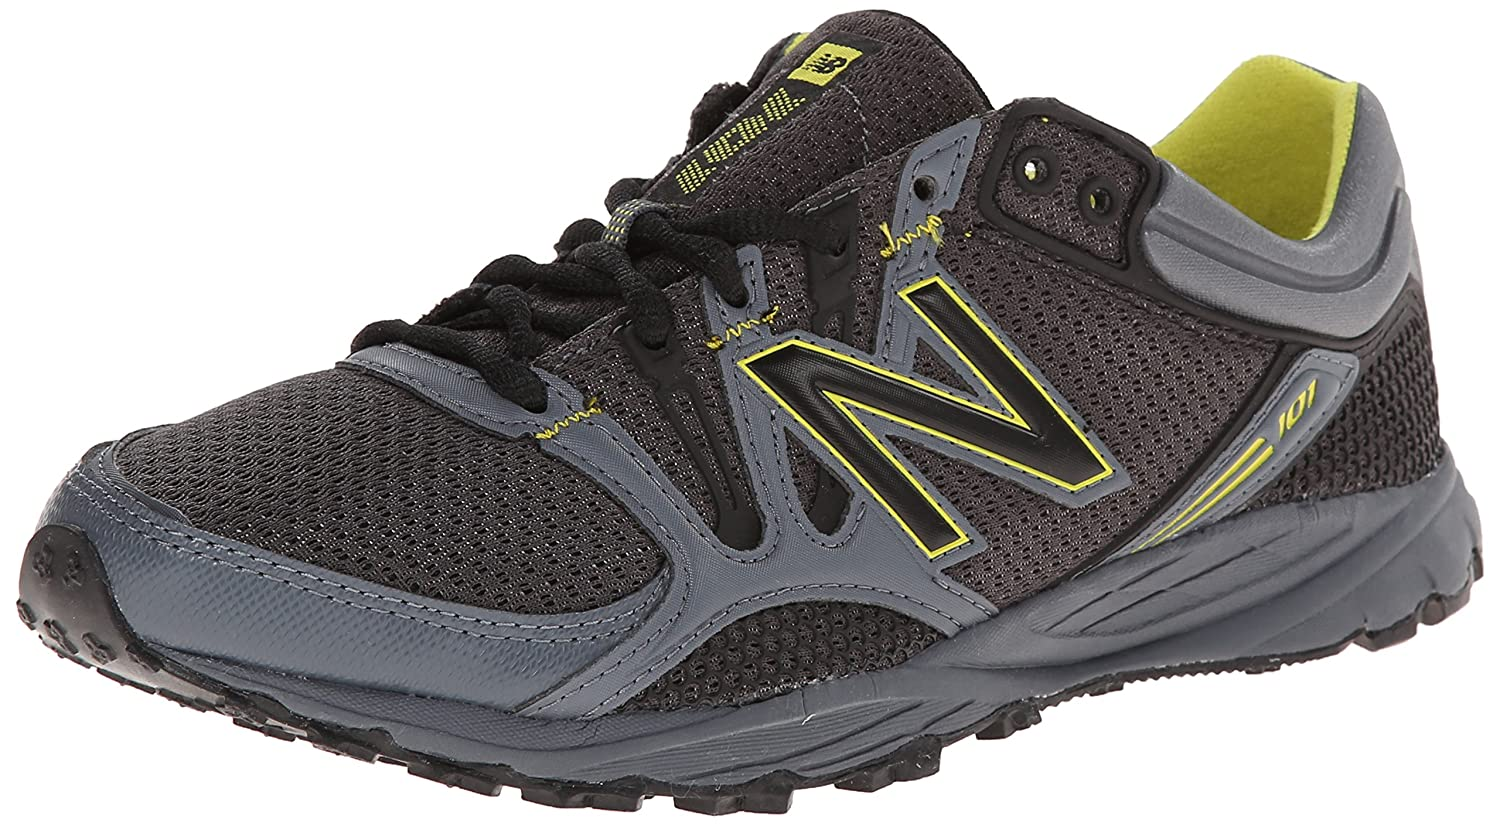 best new balance walking shoes for men